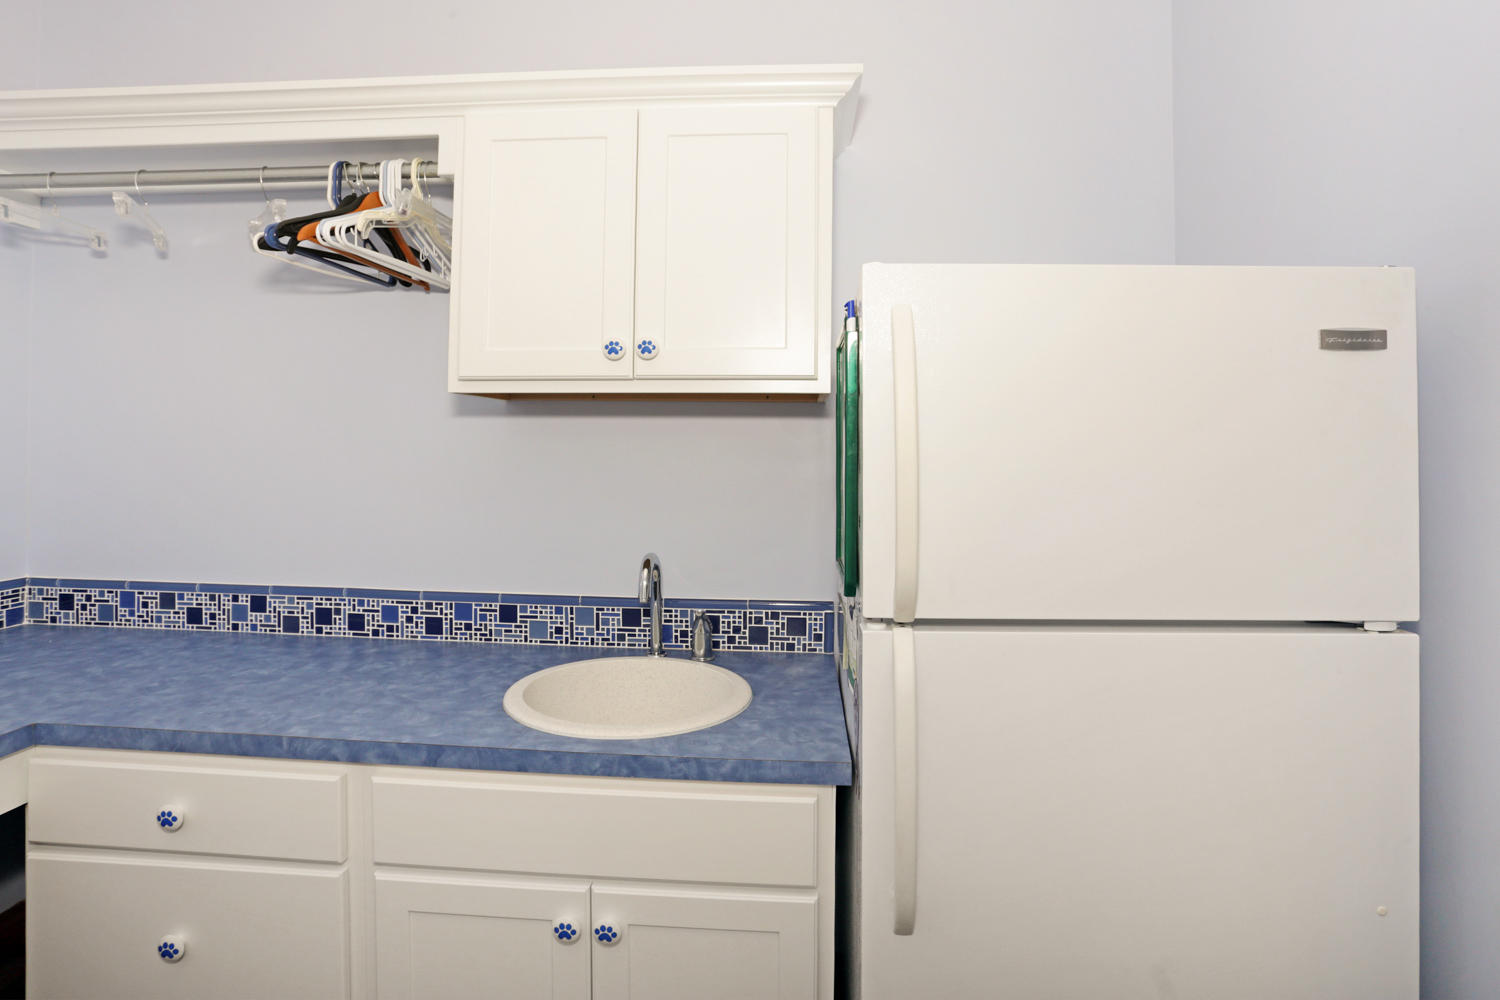 123 Anywhere St Clearwater KS-large-021-21-Laundry Room-1500x1000-72dpi.jpg